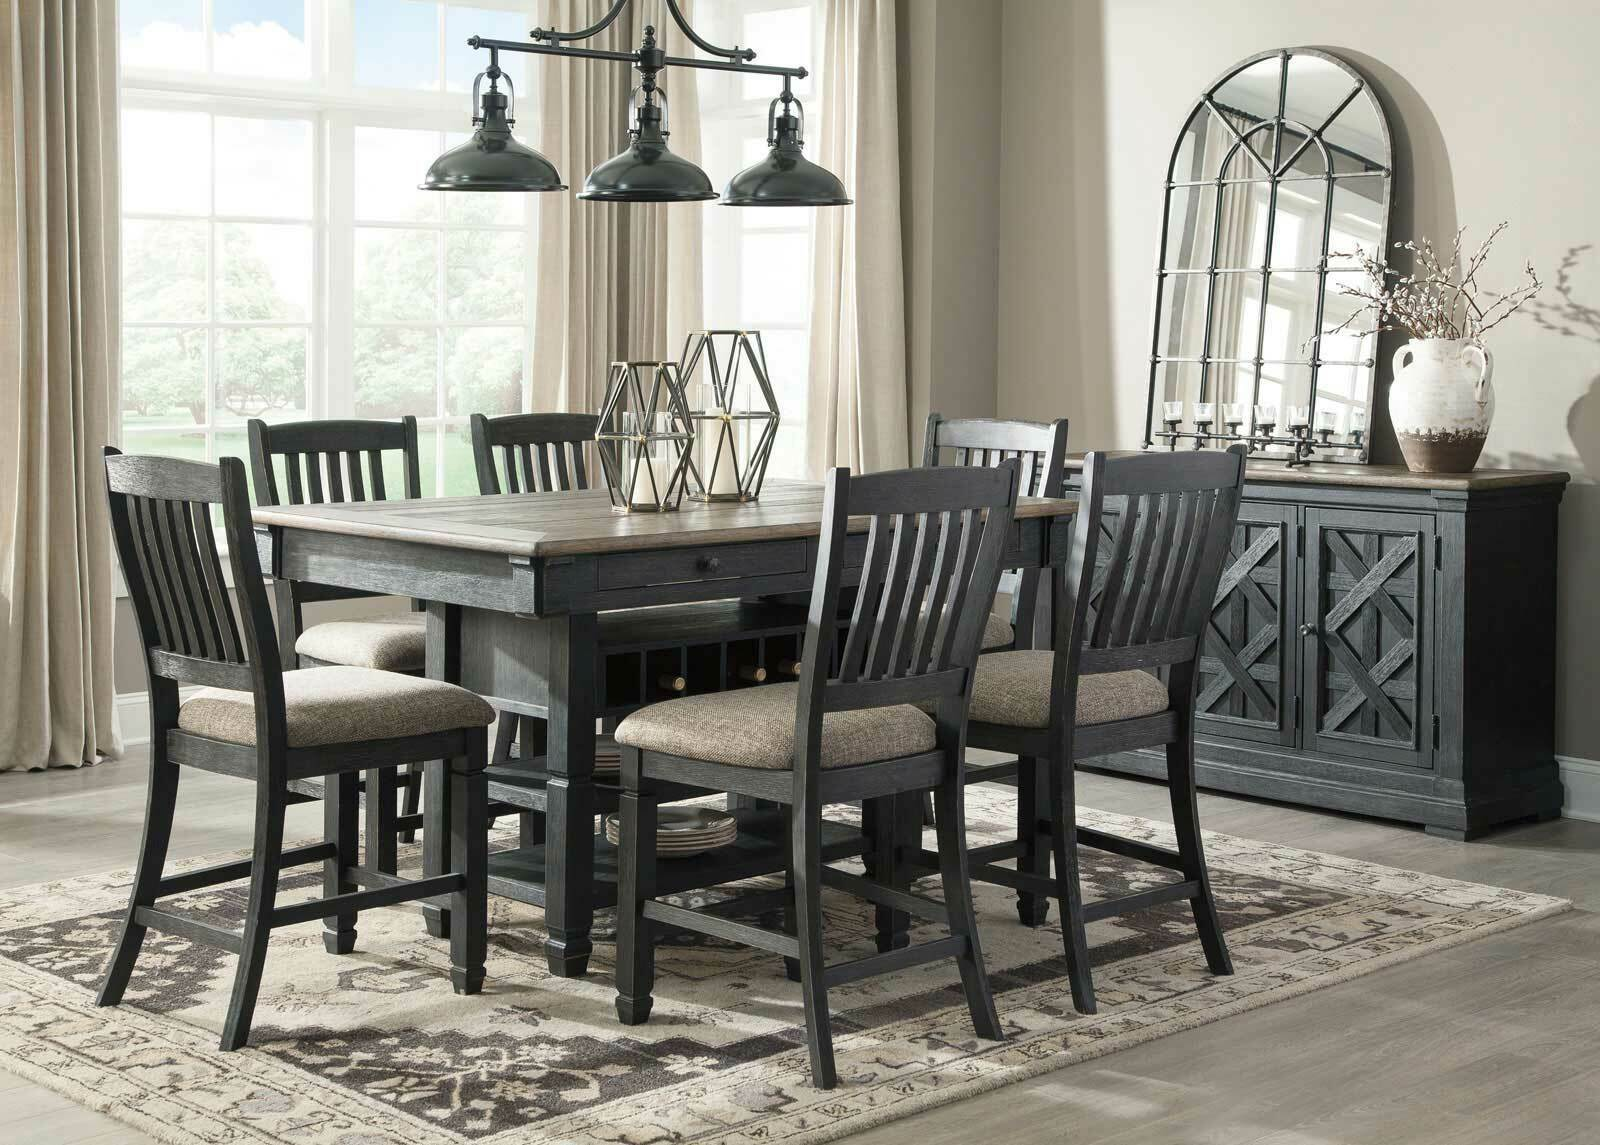 Picture of: Cottage Counter Height 7 Pieces Dining Room Set Black Square Table Chair Ic53 For Sale Online Ebay